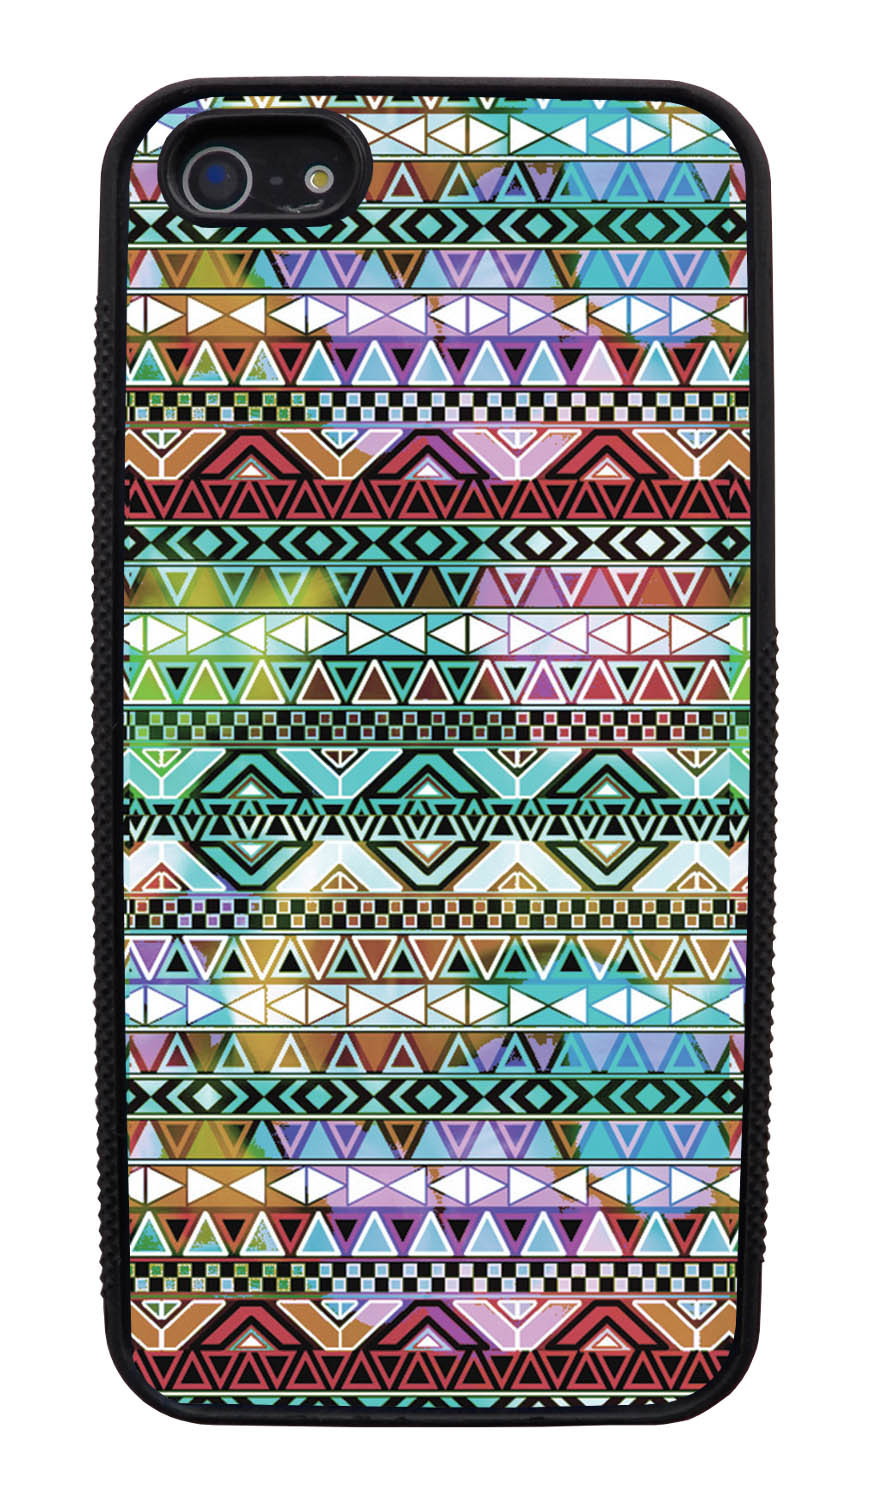 Apple iPhone 5 / 5S Aztec Case - Colorful Neon Lights - Ceramic Glaze Like - Black Slim Rubber Case